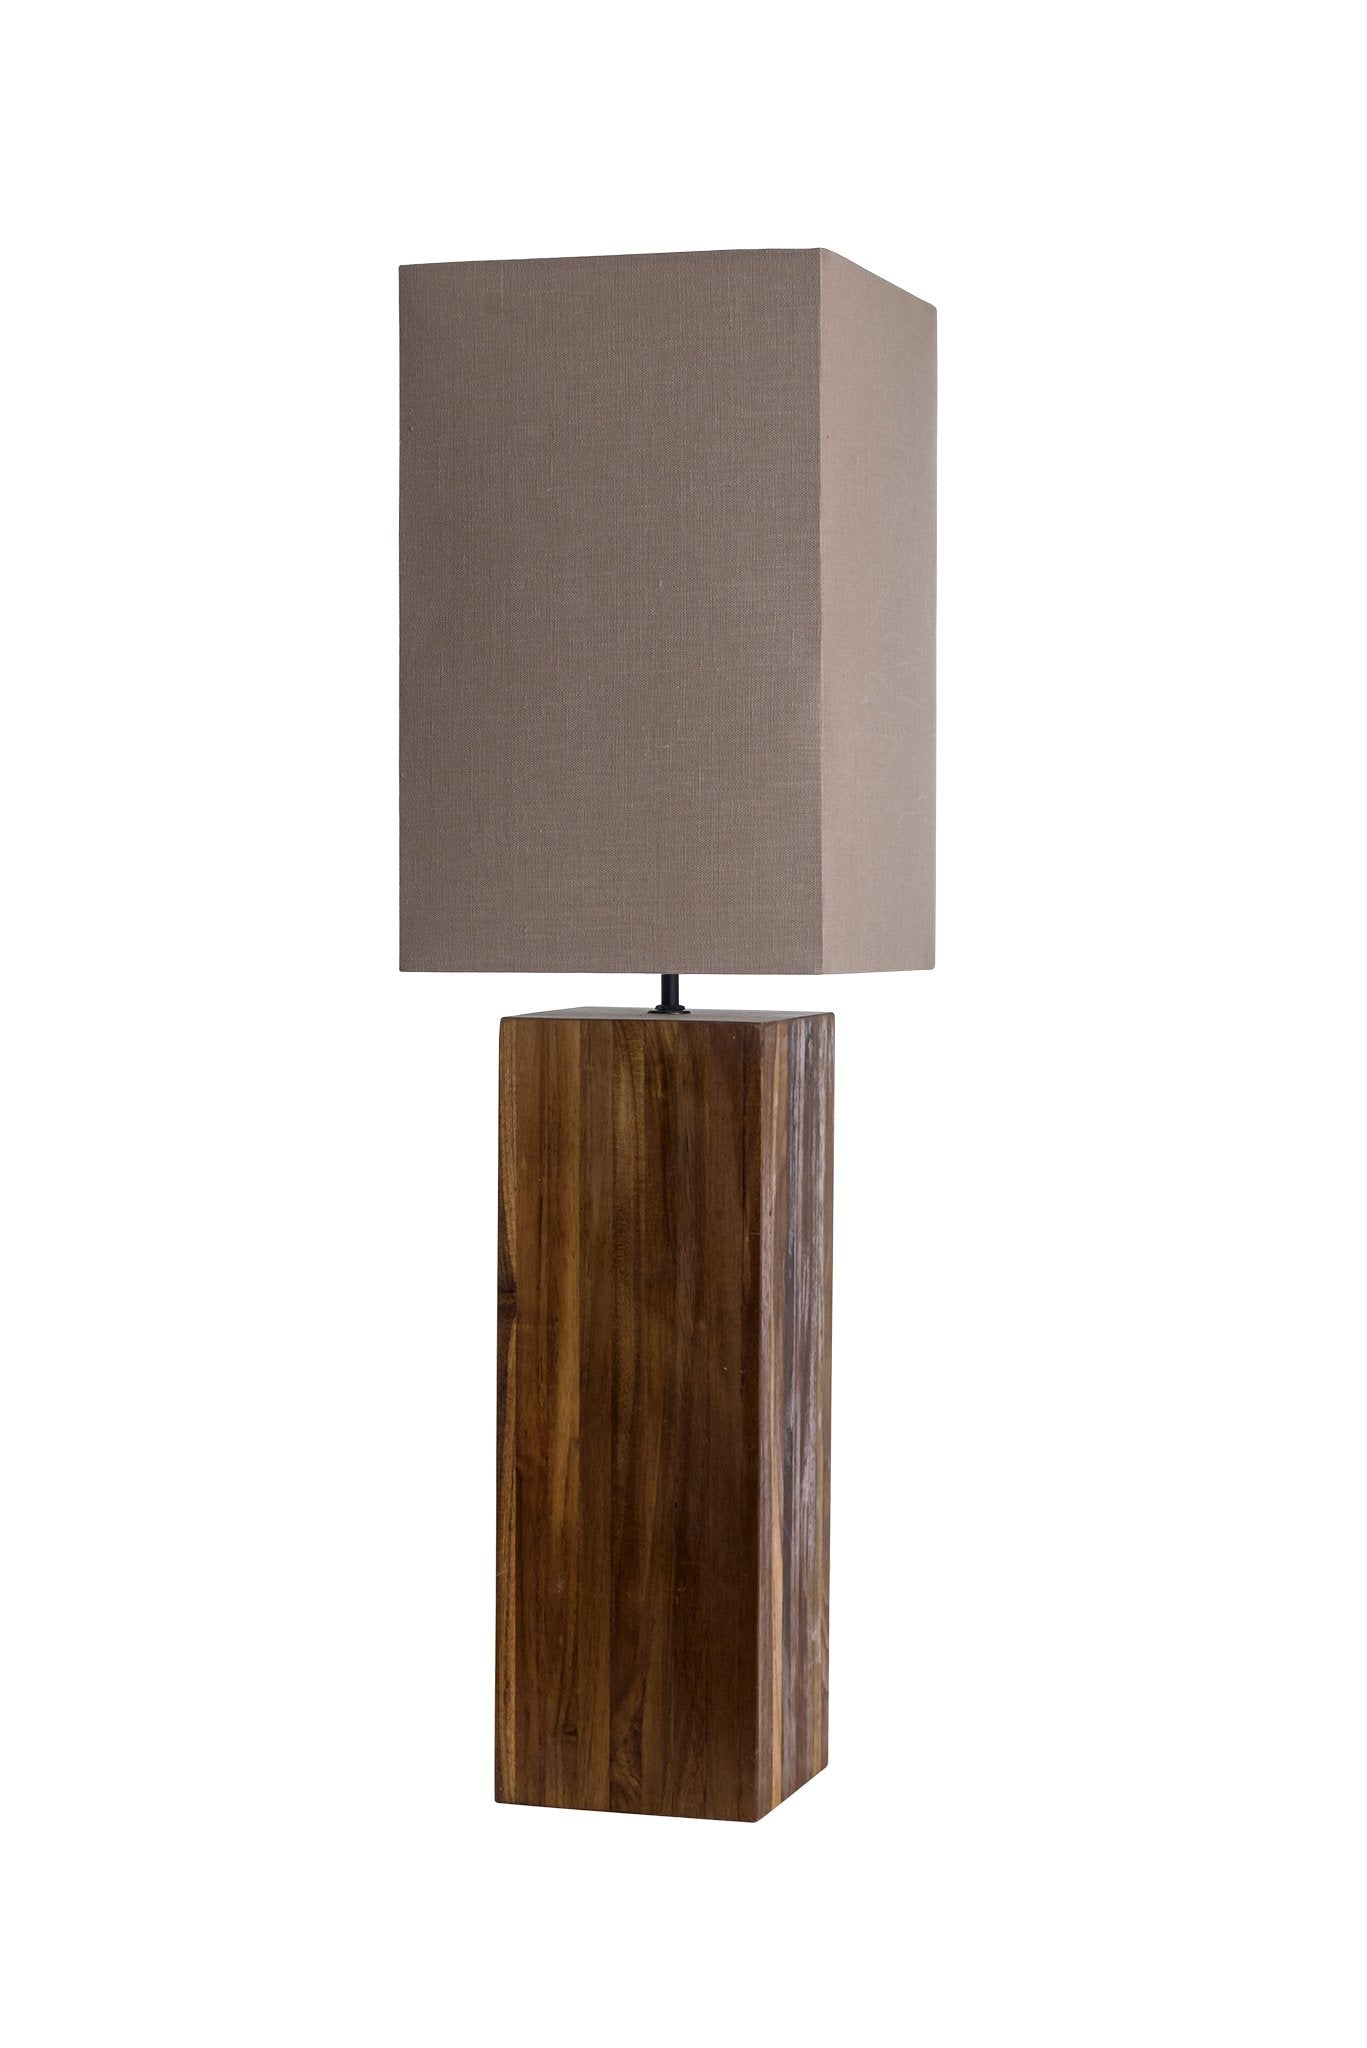 Minimalist Solid Oil Teak Wood Table Lamp - O'THENTIQUE